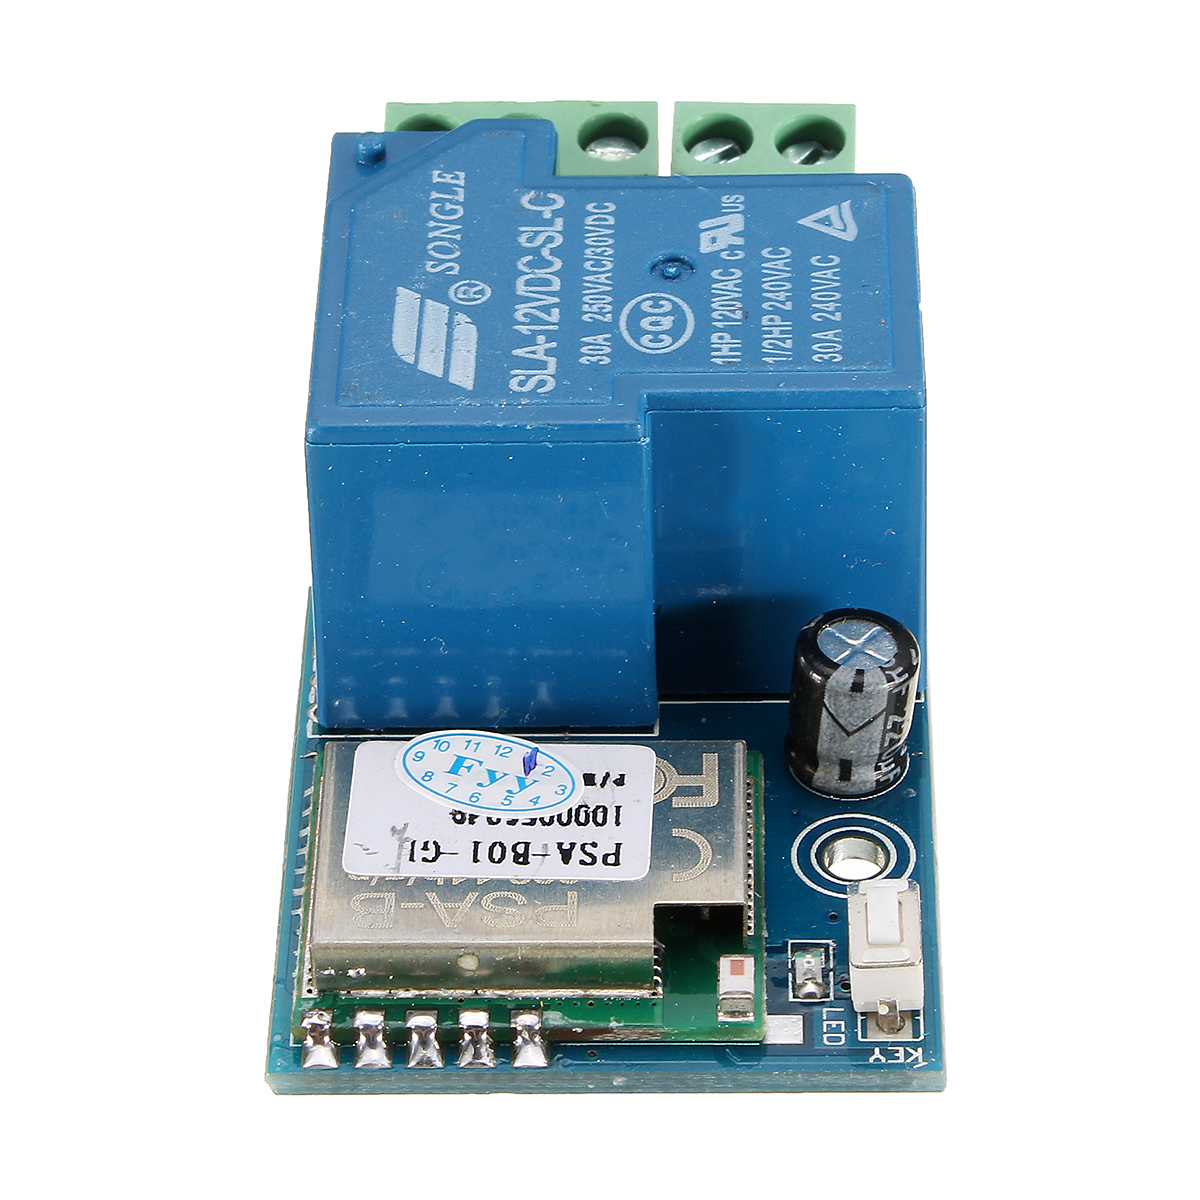 DC12V Wifi Relay Timing Module Mobile Remote Control Switch For Smart Home Electrical Modification